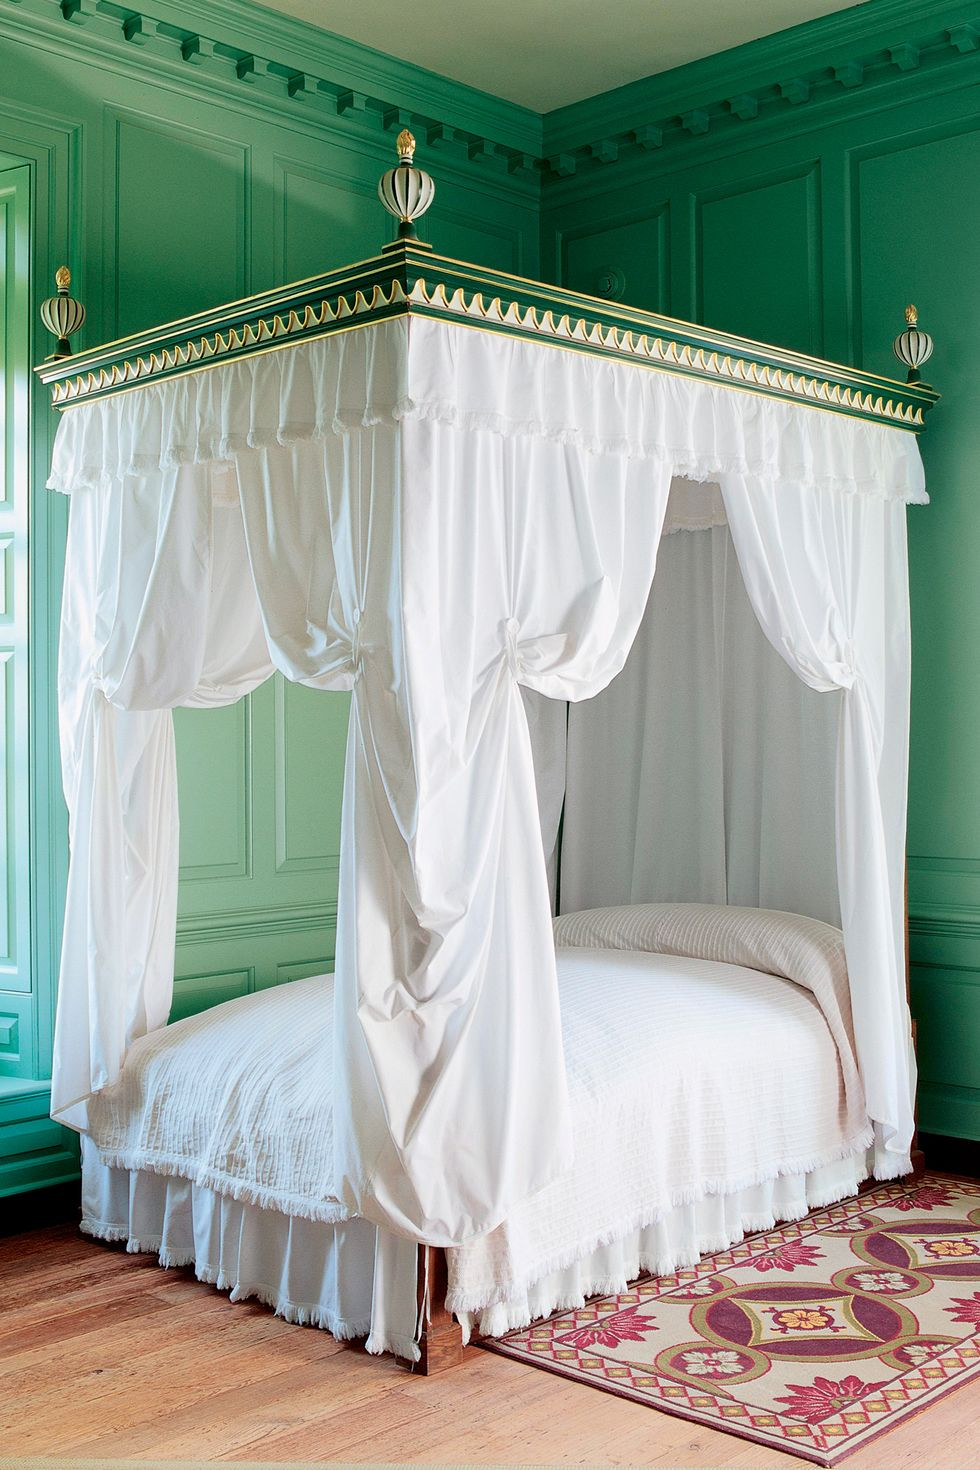 Bed with curtains at Colonial Williamsburg, Virginia